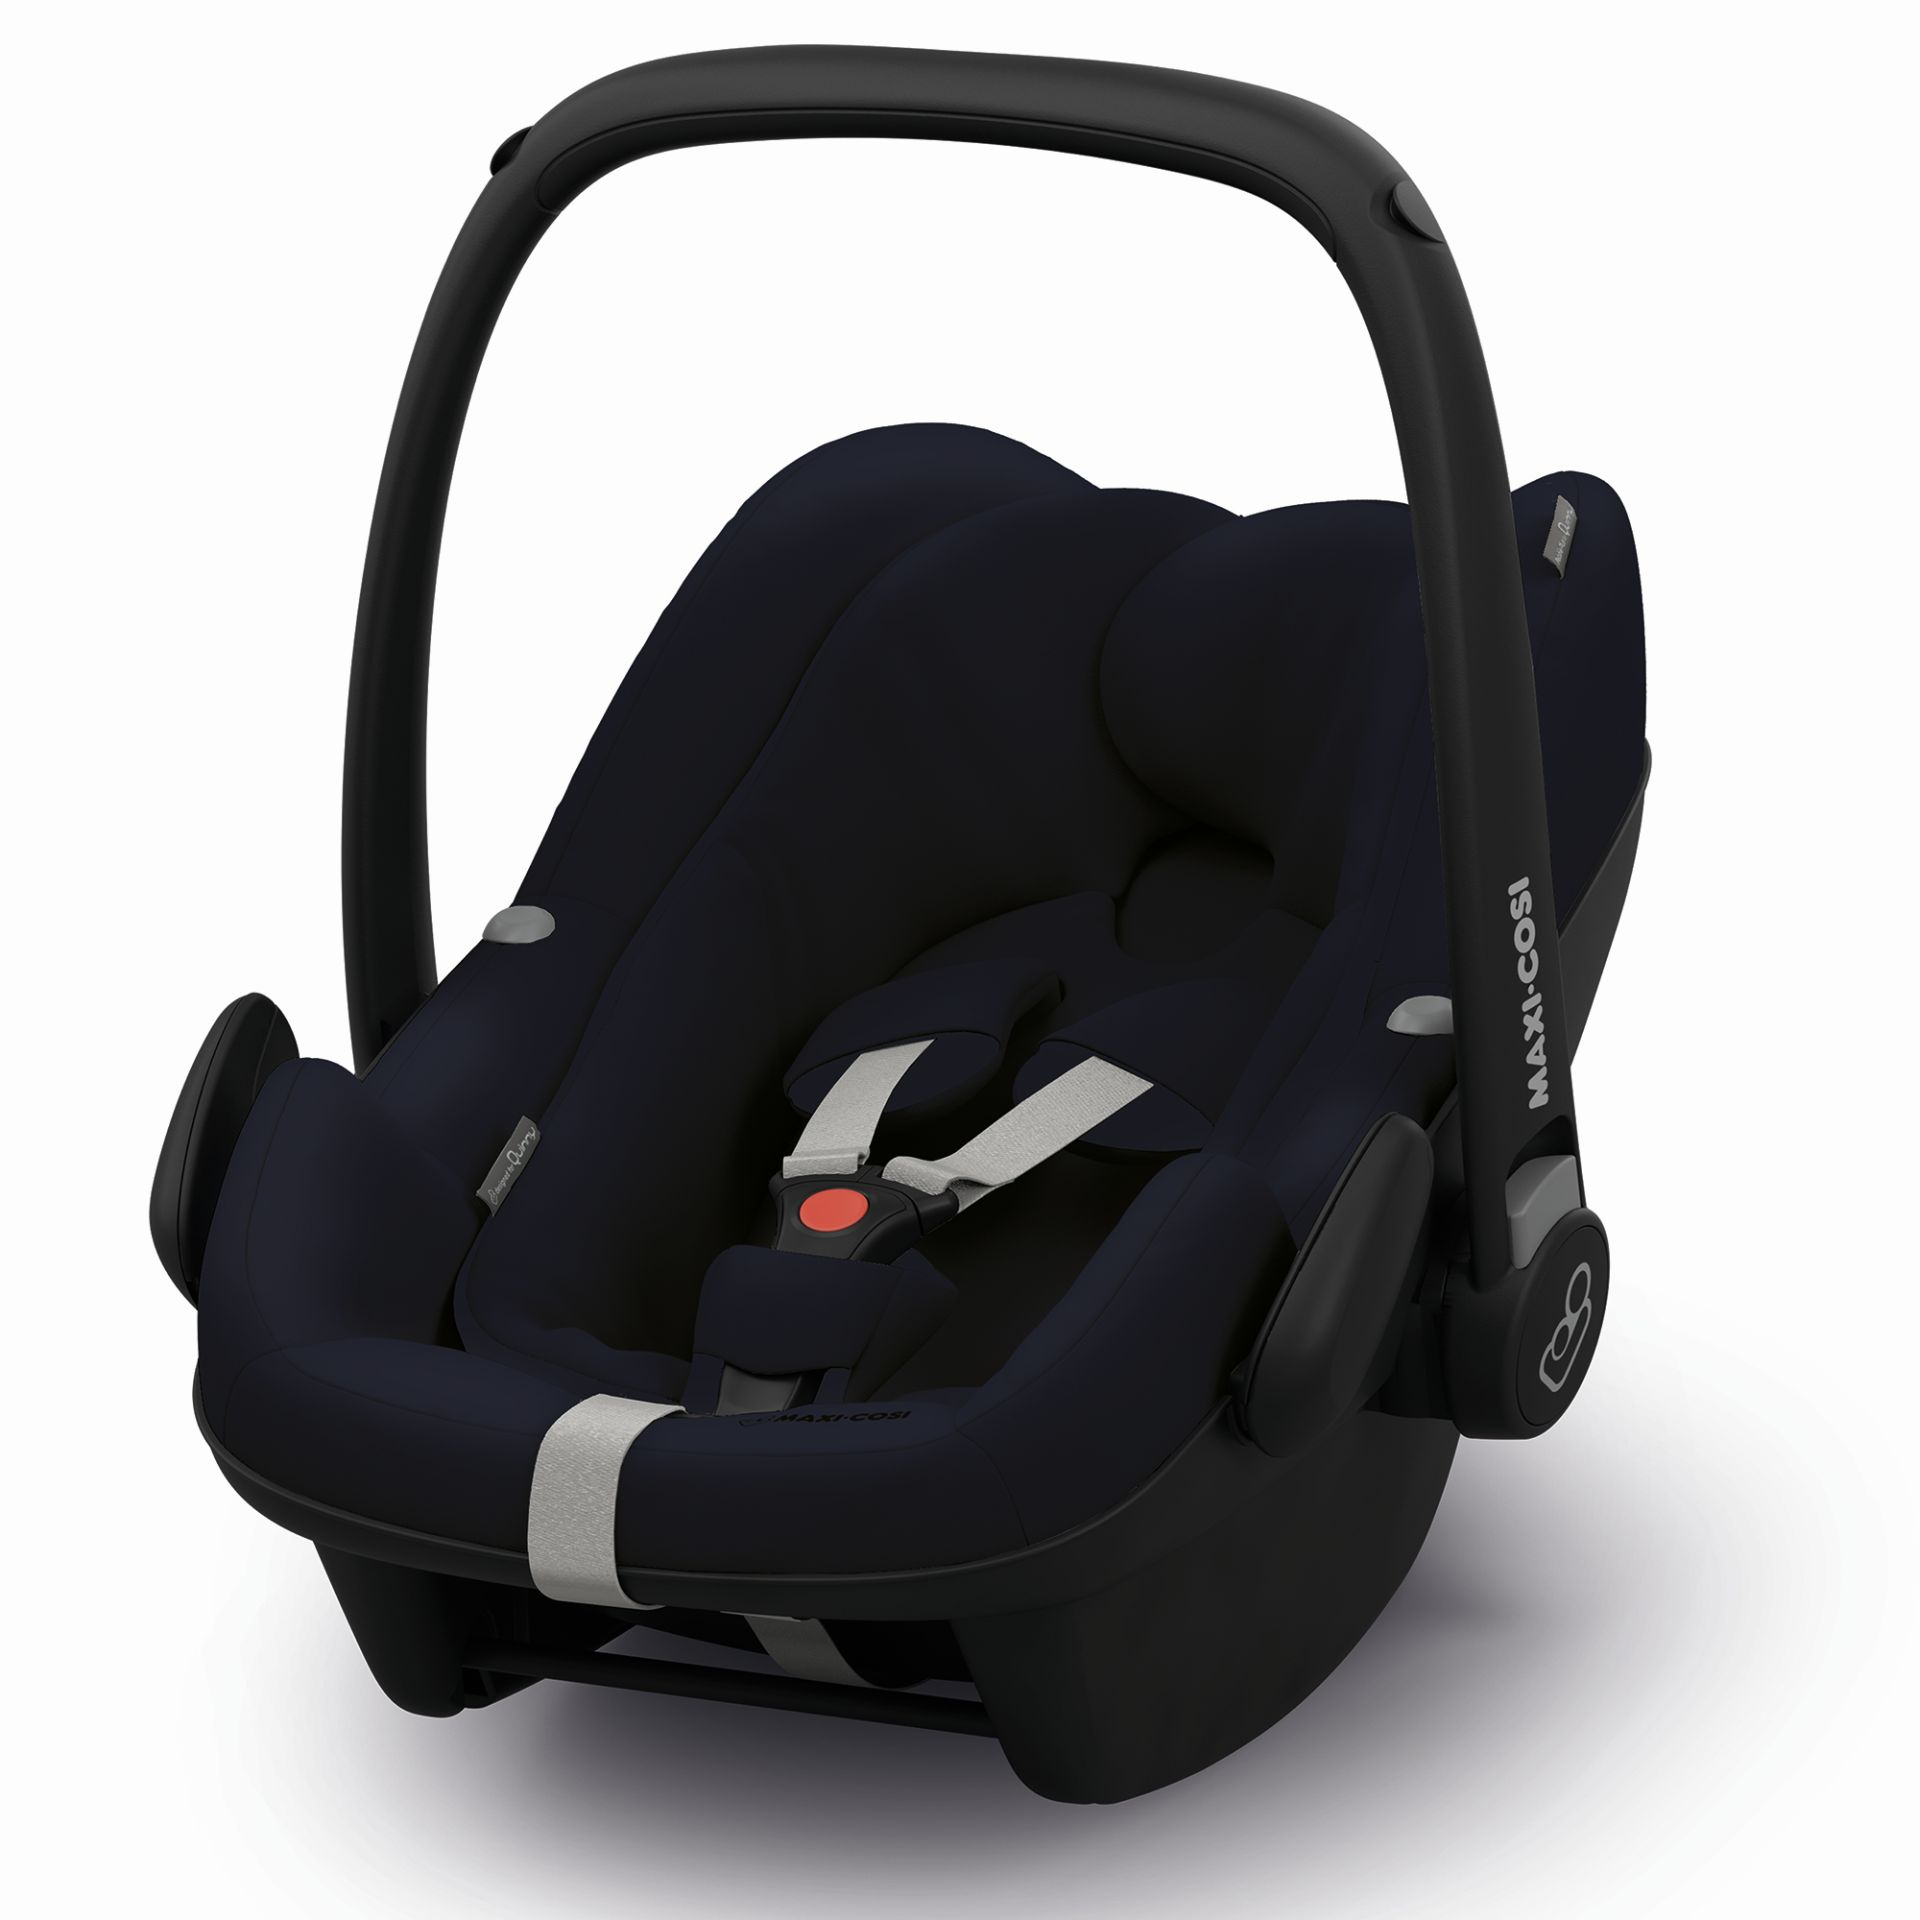 maxi cosi infant car seat pebble plus 2019 midnight blue buy at kidsroom car seats. Black Bedroom Furniture Sets. Home Design Ideas